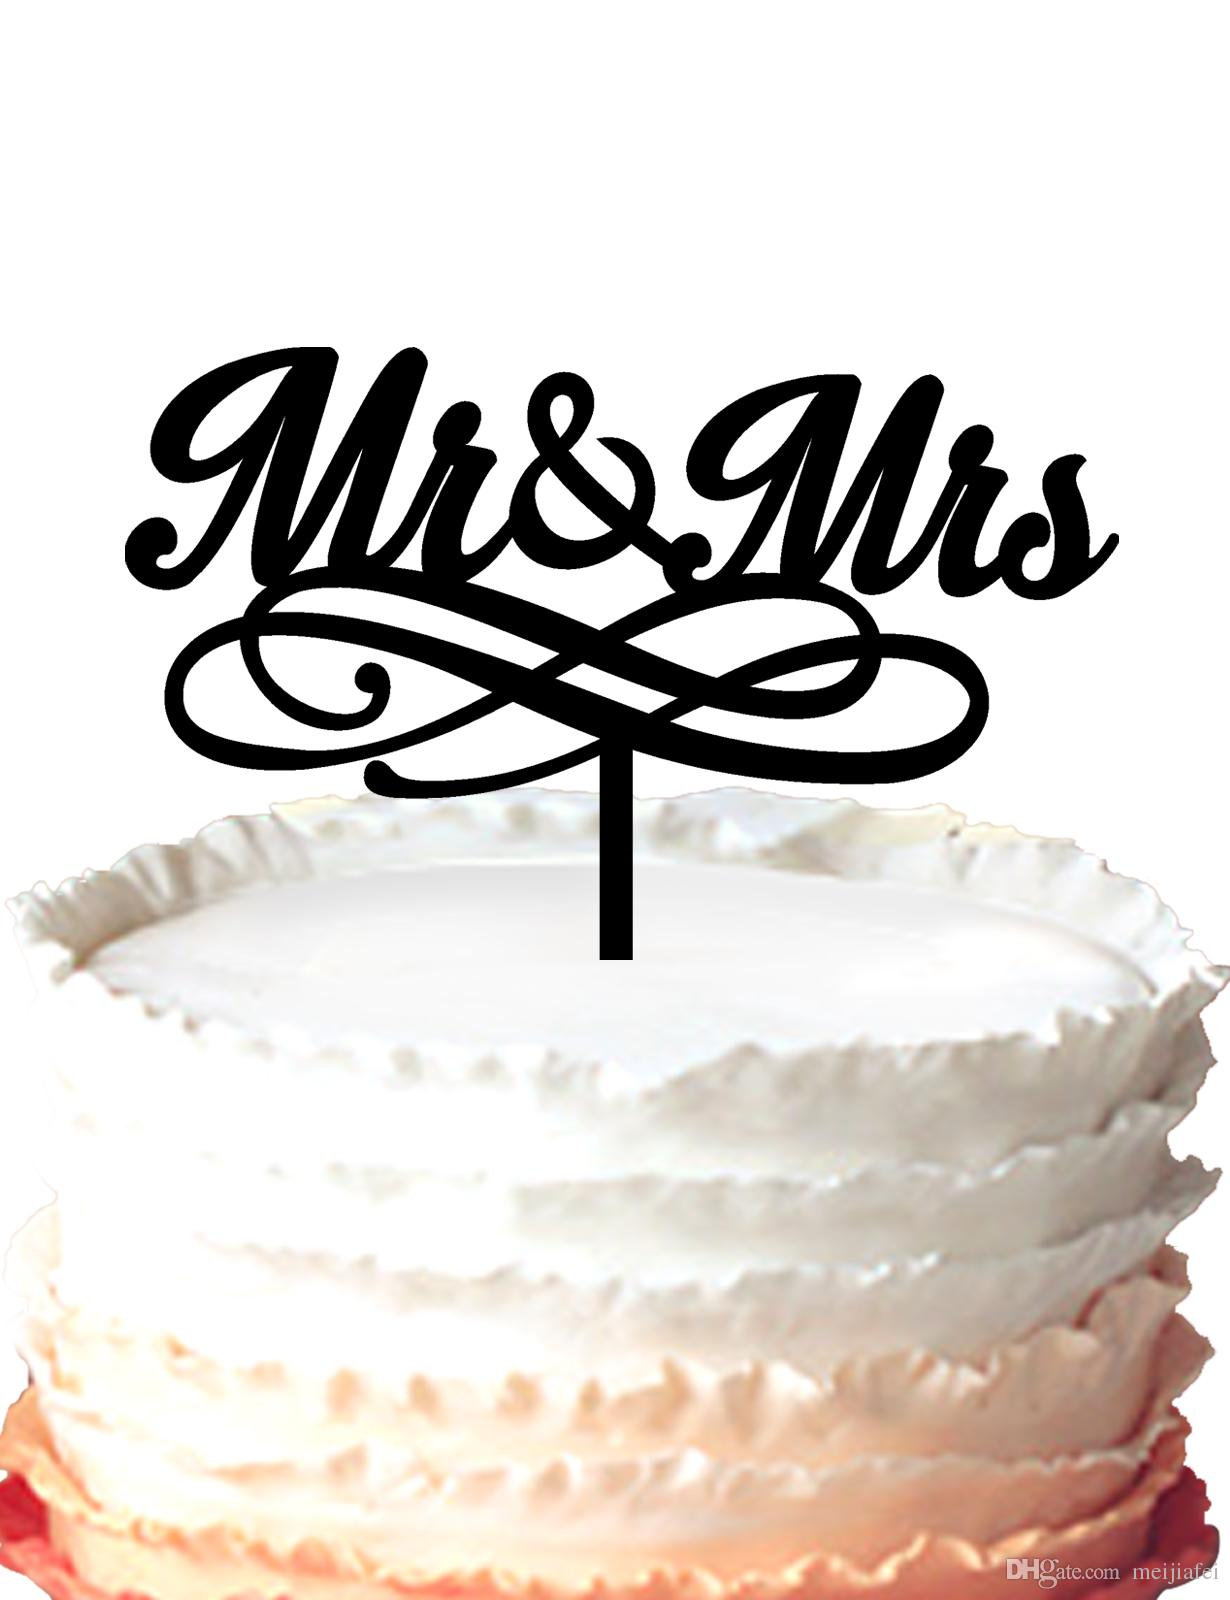 Anniversary Wedding Acrylic Cake Topper Silhouette Mr & Mrs,cake ...